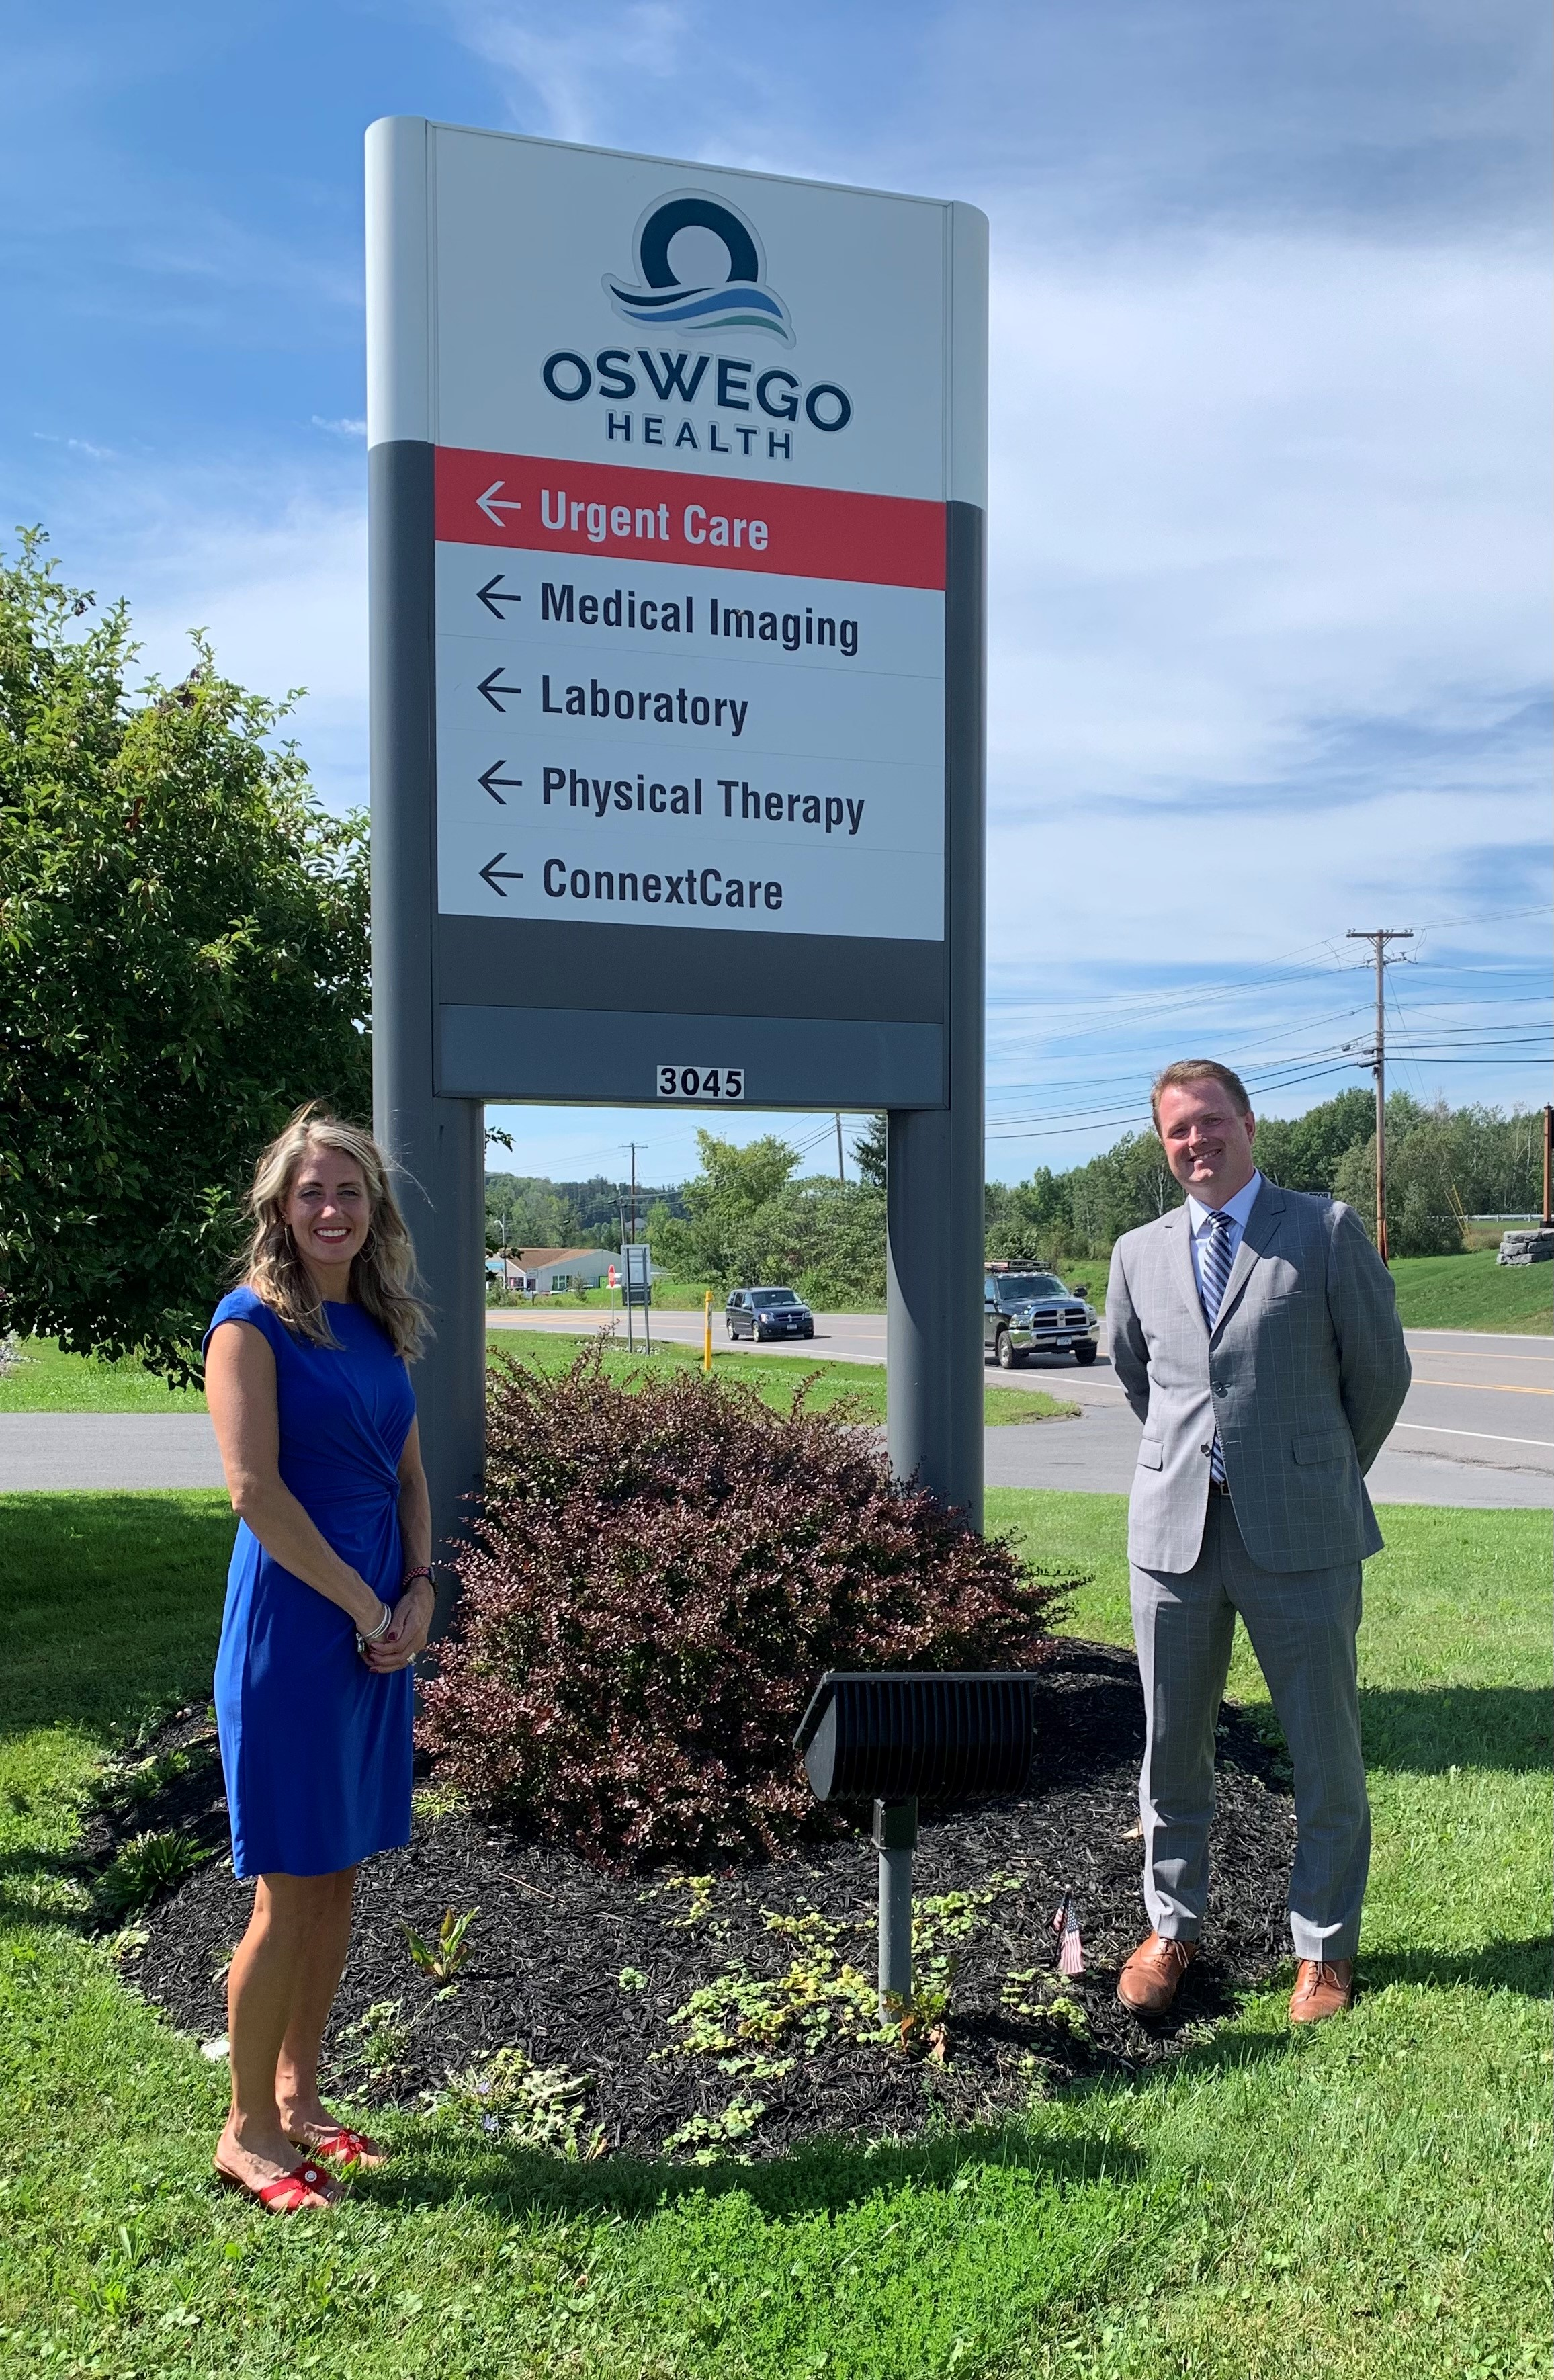 ConnextCare Expands Services to Central Square Image